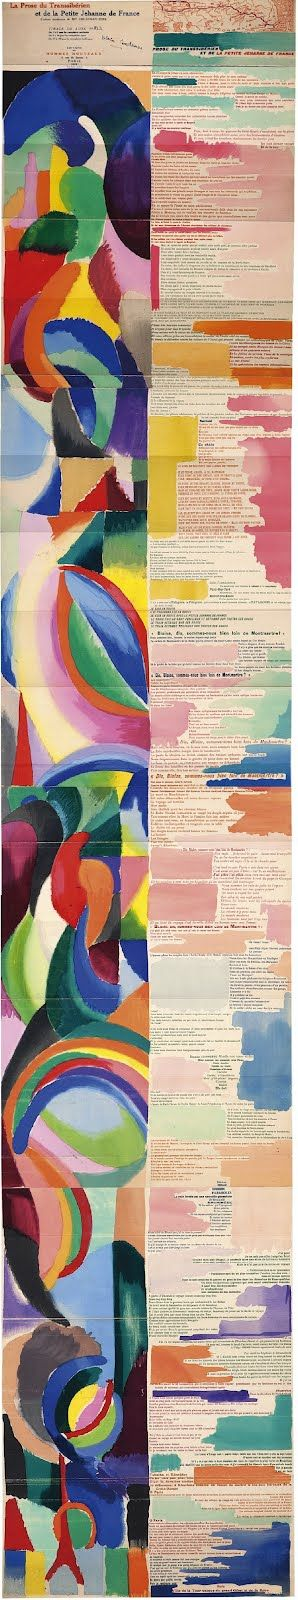 Sonia Delaunay and Blaise Cendrars' collaboration on the printed version of Cendrars' poem, Prose on the Trans-Siberian and of Little Jehanne of France, 1 9 1 3. The text runs vertically and unfolds to more than six feet. Delaunay's imagery was done with a stencil but shows the effects of hand-manipulated